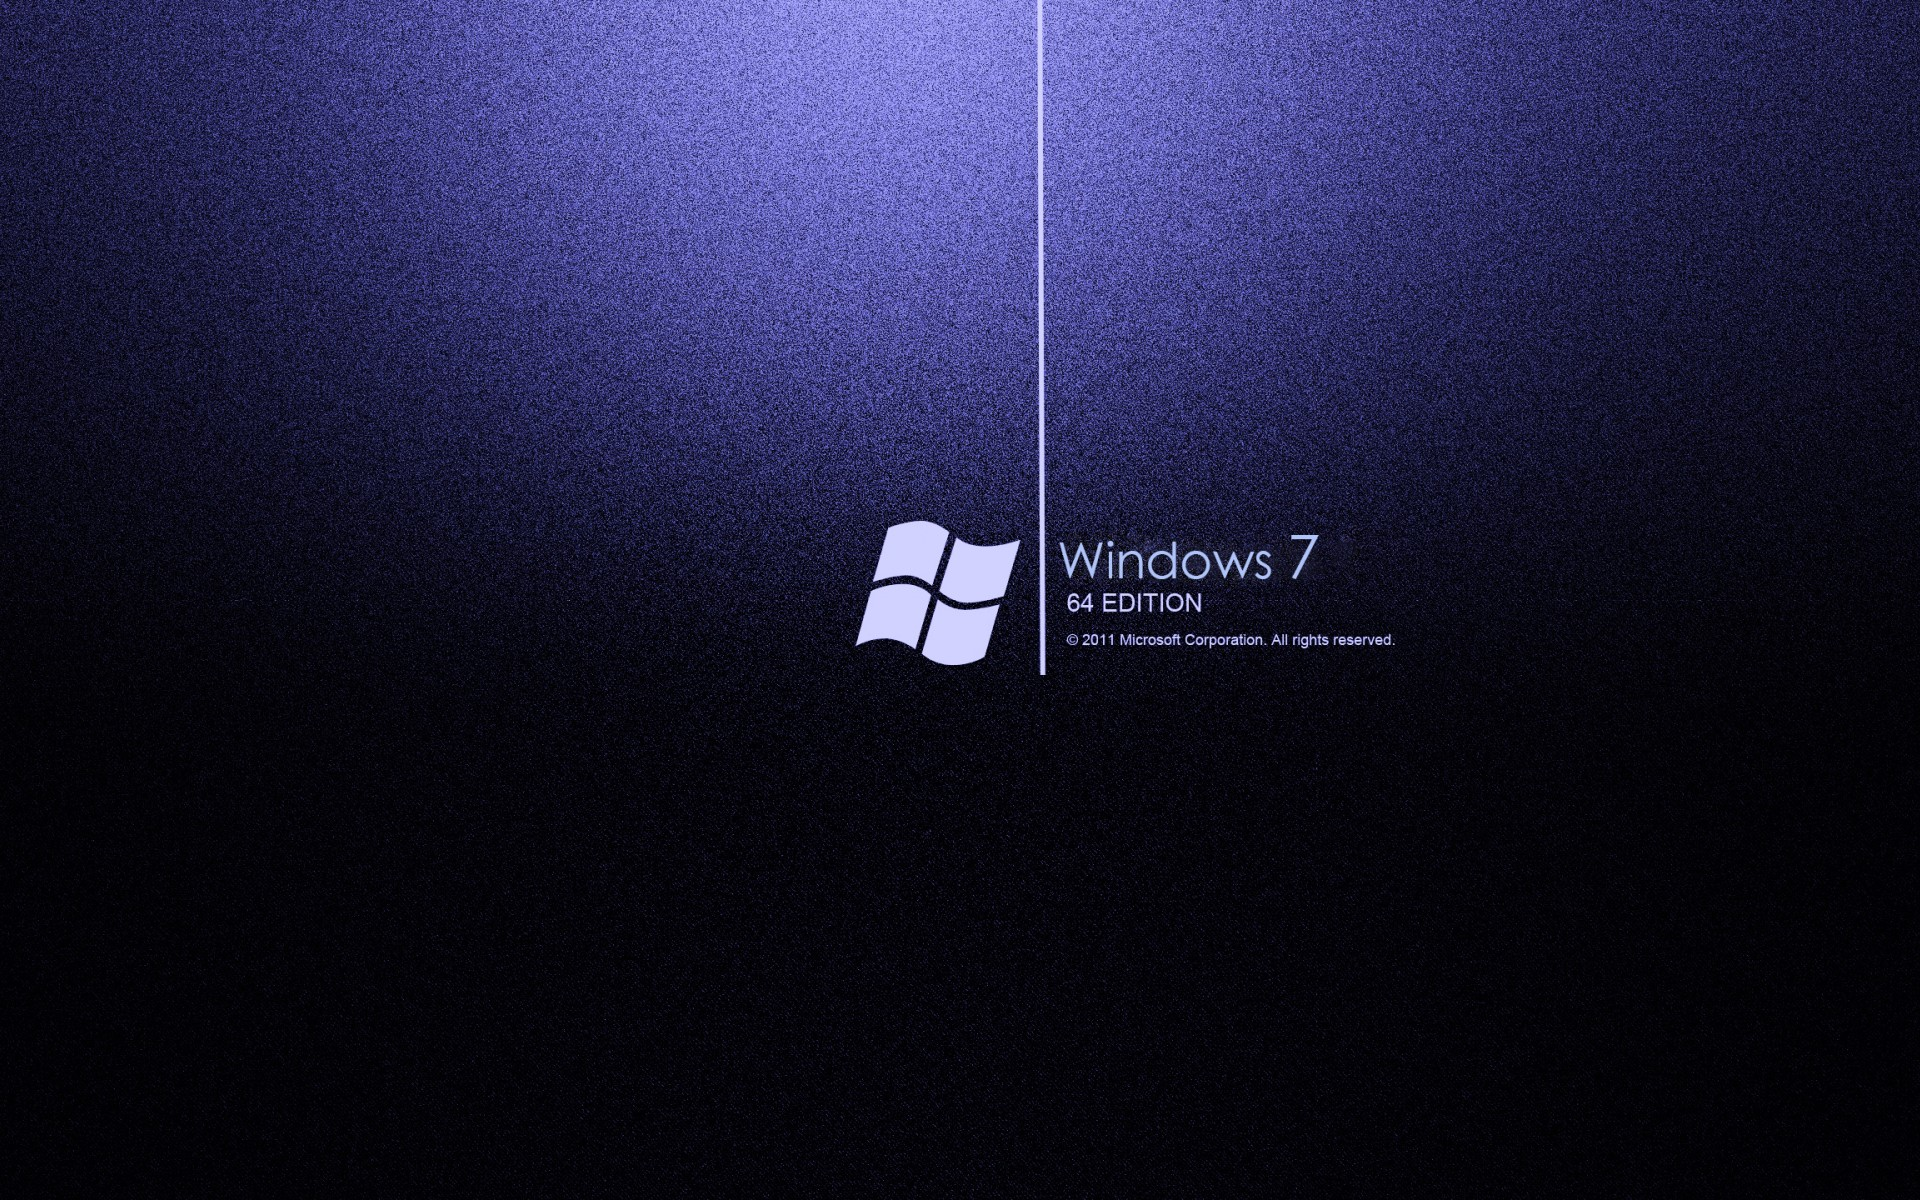 Windows 7 vicino alla fine